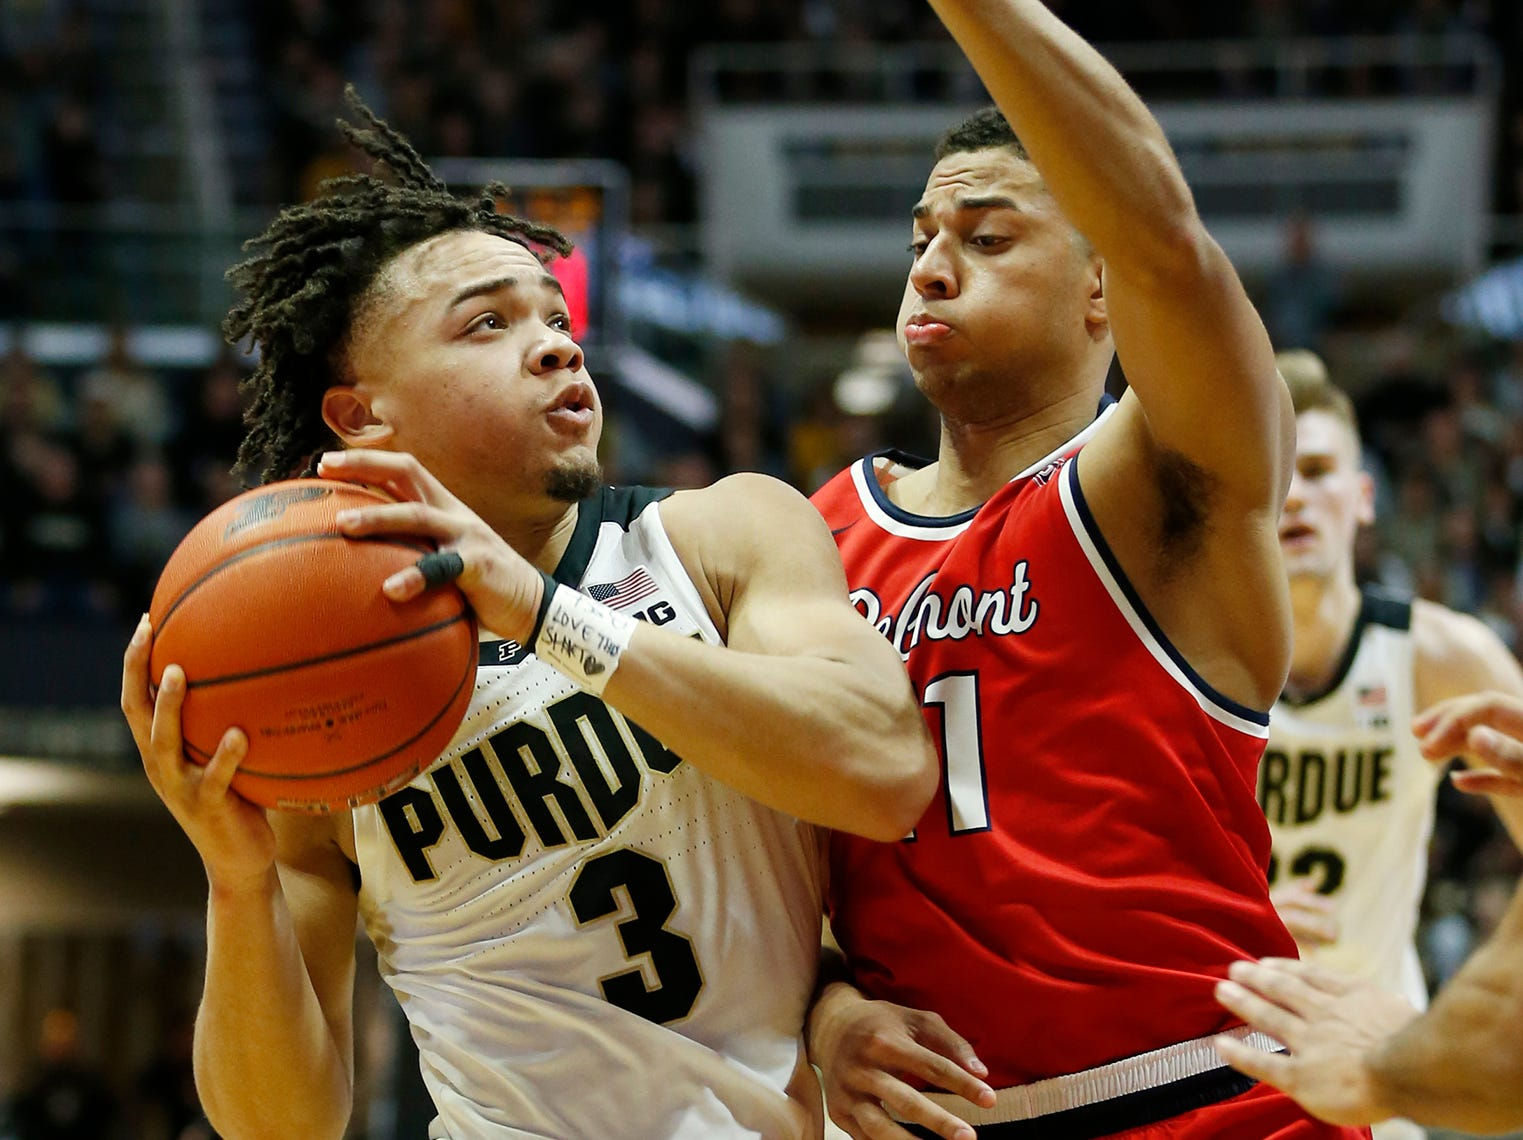 Carsen Edwards of Purdue with a drive against Kevin McClain of Belmont Saturday, December 29, 2018, at Mackey Arena. Purdue defeated Belmont 73-62.